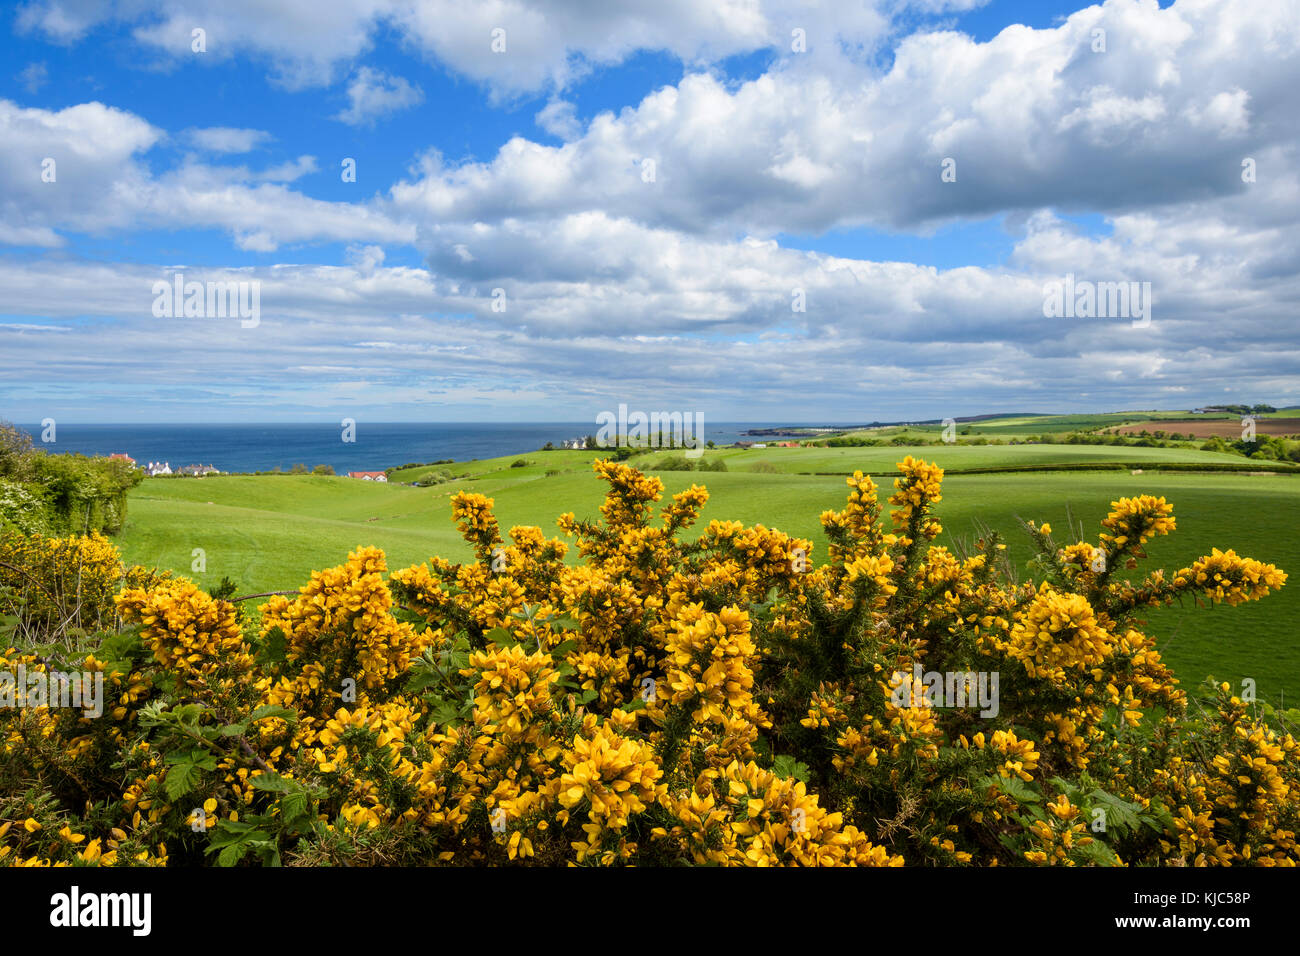 Scenic view of countryside with common gorse in spring at St Abbs in Scotland - Stock Image